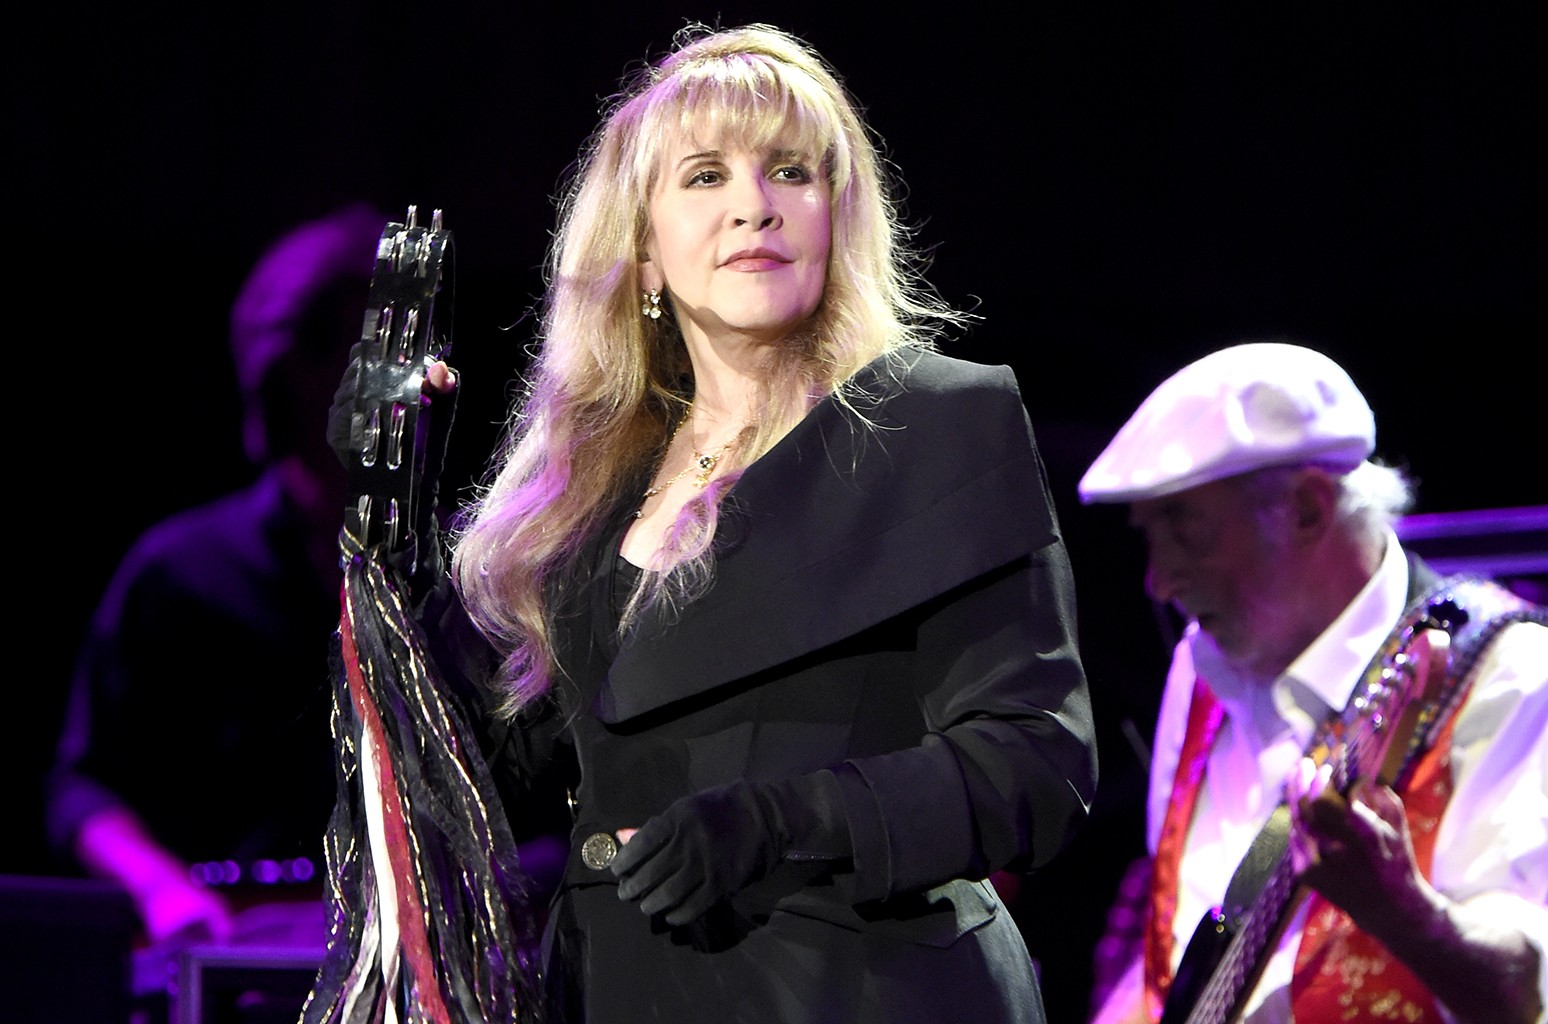 Stevie Nicks of Fleetwood Mac performs during The Classic West at Dodger Stadium on July 16, 2017 in Los Angeles.